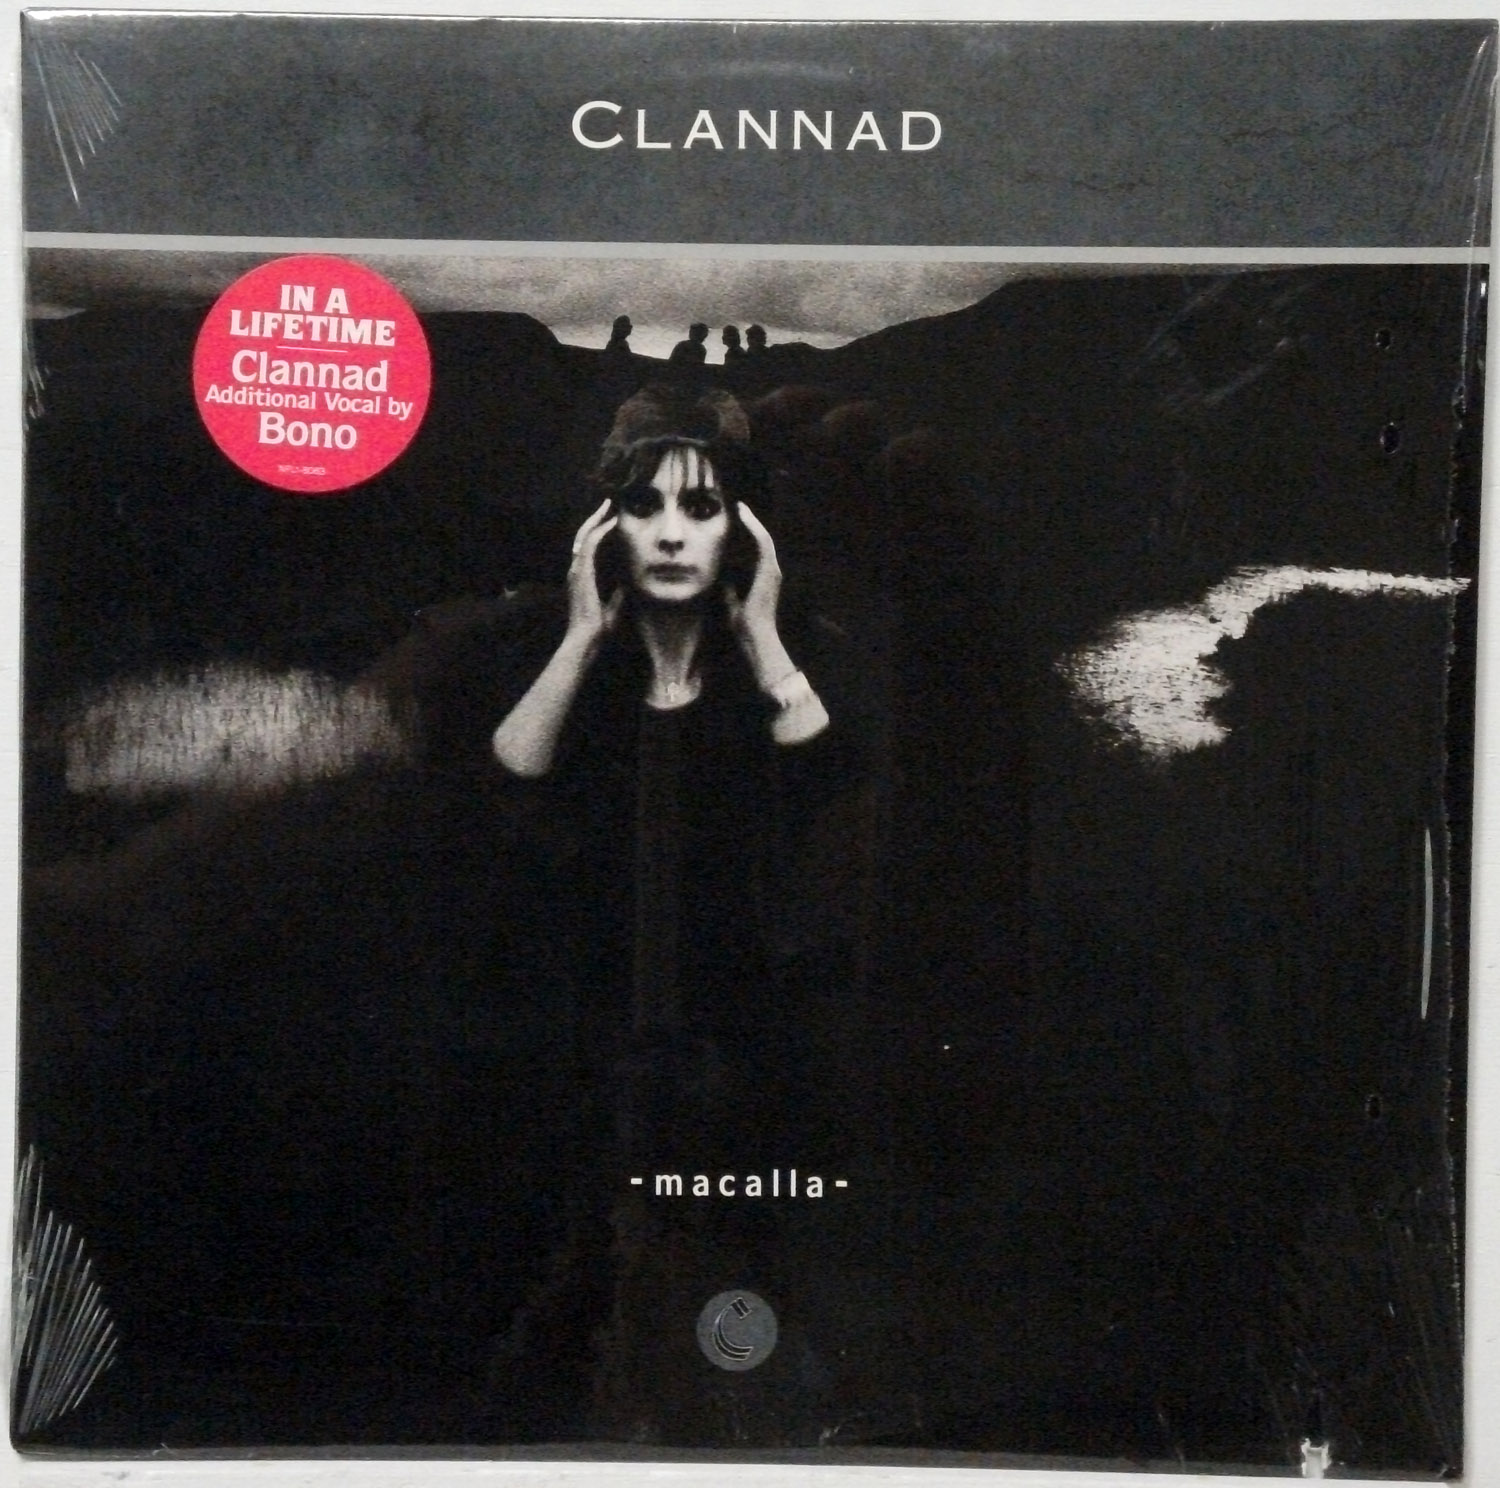 Clannad - Macalla 1985 LP in shrink wrap with Bono appearance